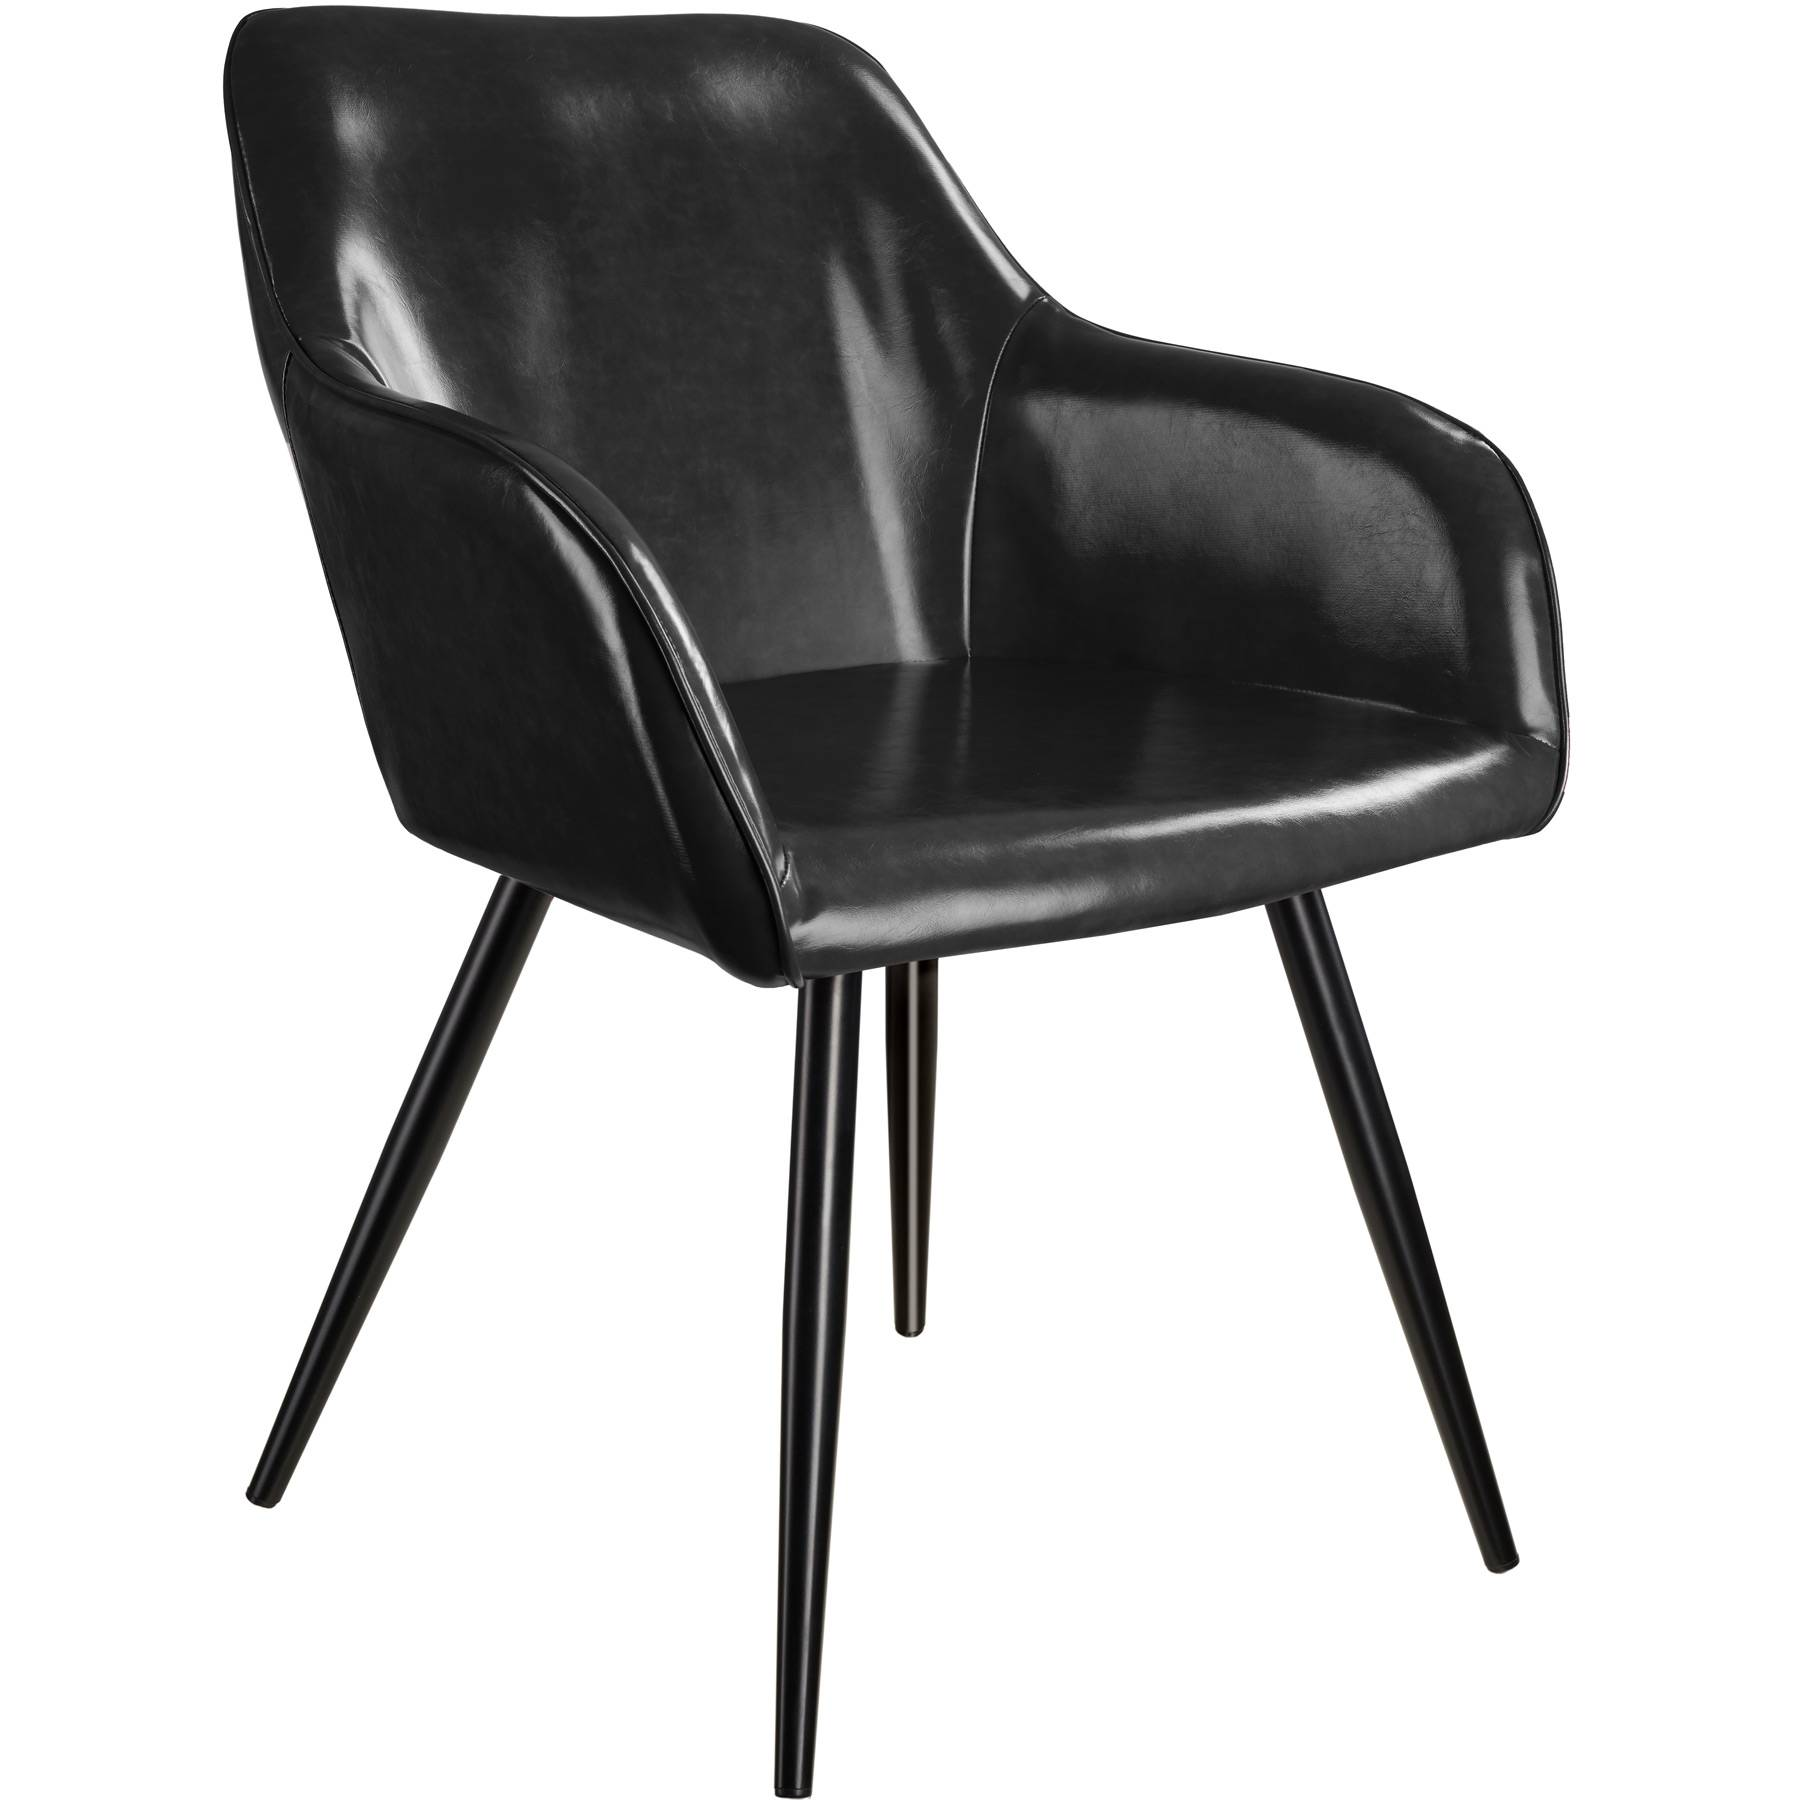 tectake Marilyn Faux Leather Chair - black